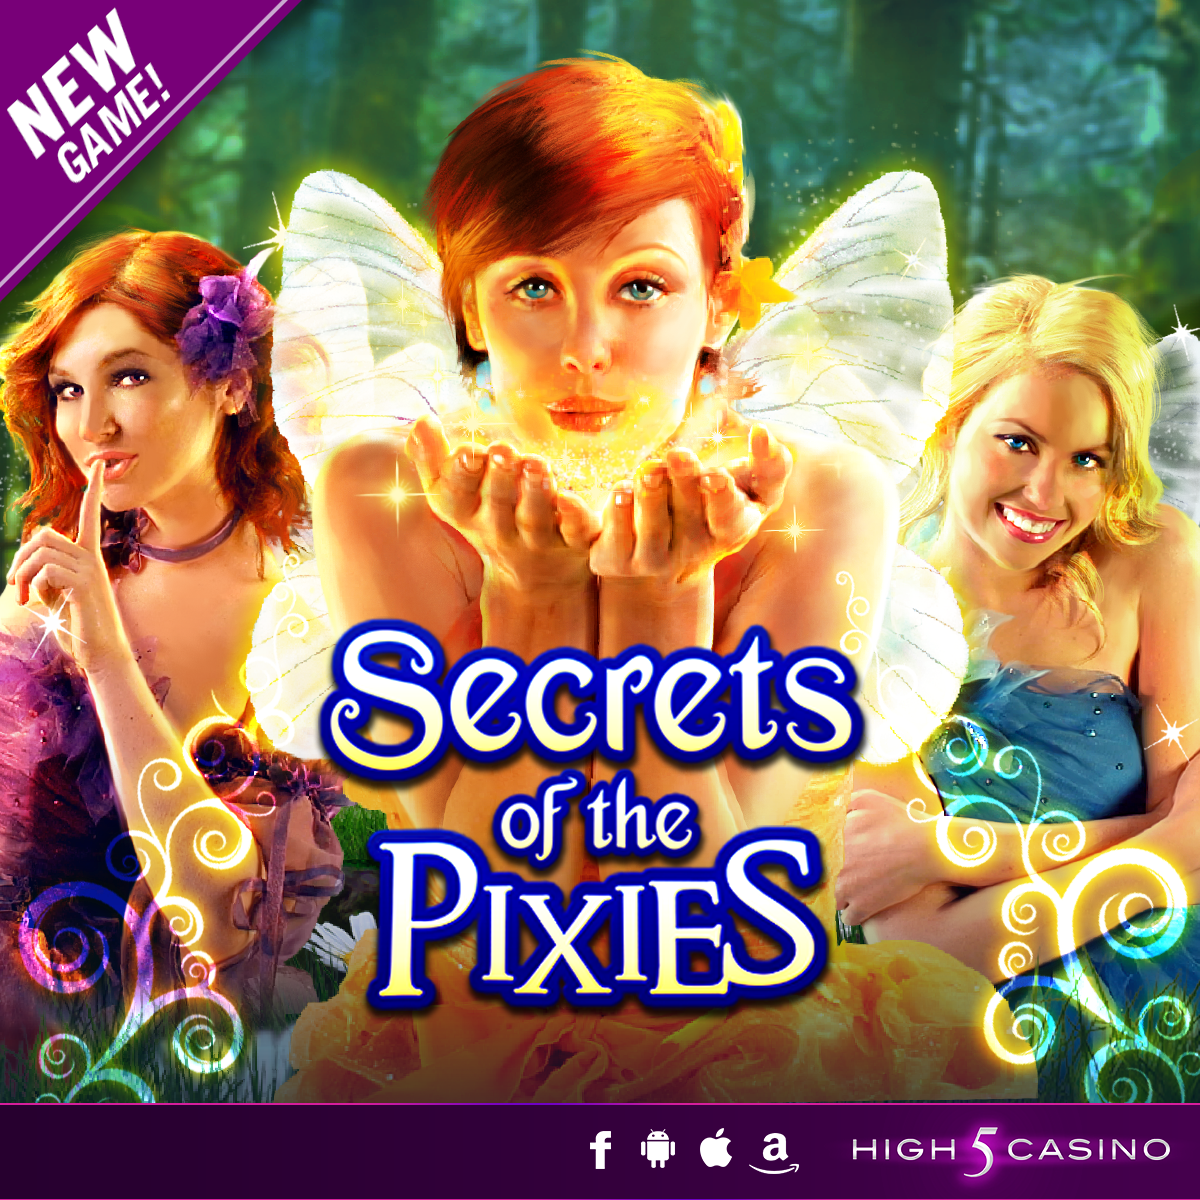 h5c_secrets-of-the-pixies_blogpost